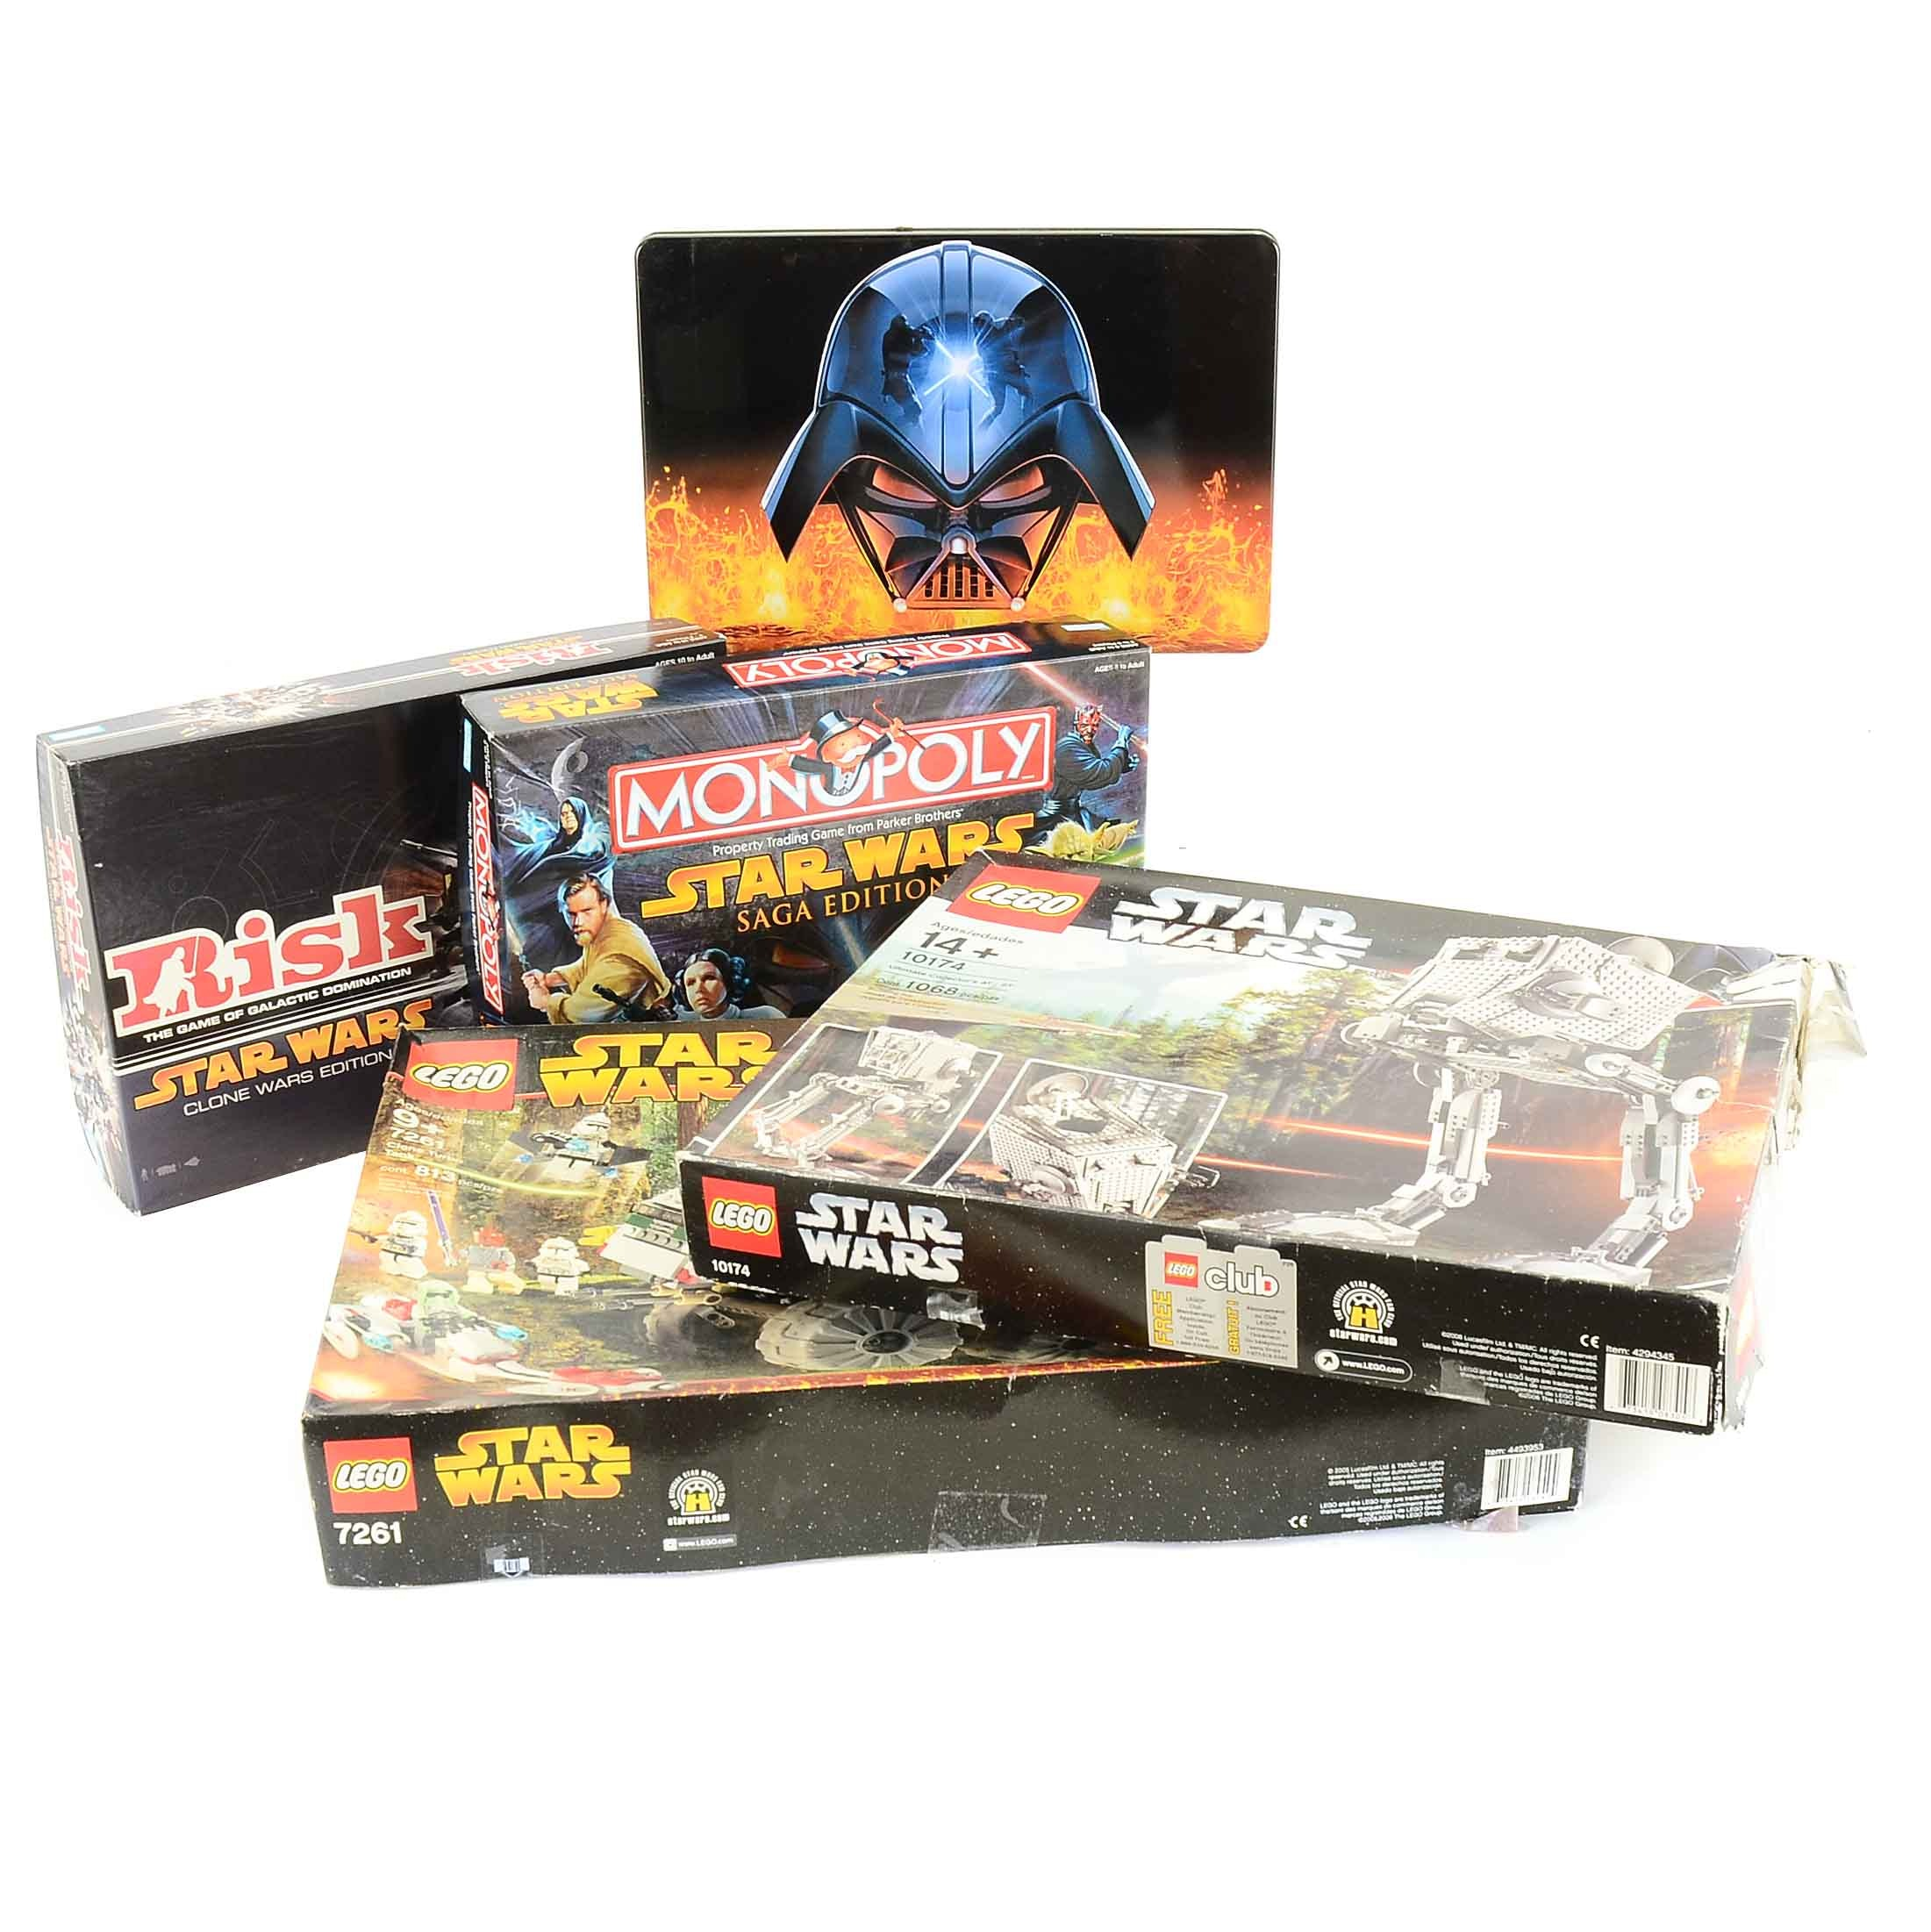 Star Wars LEGO Sets and Board Games